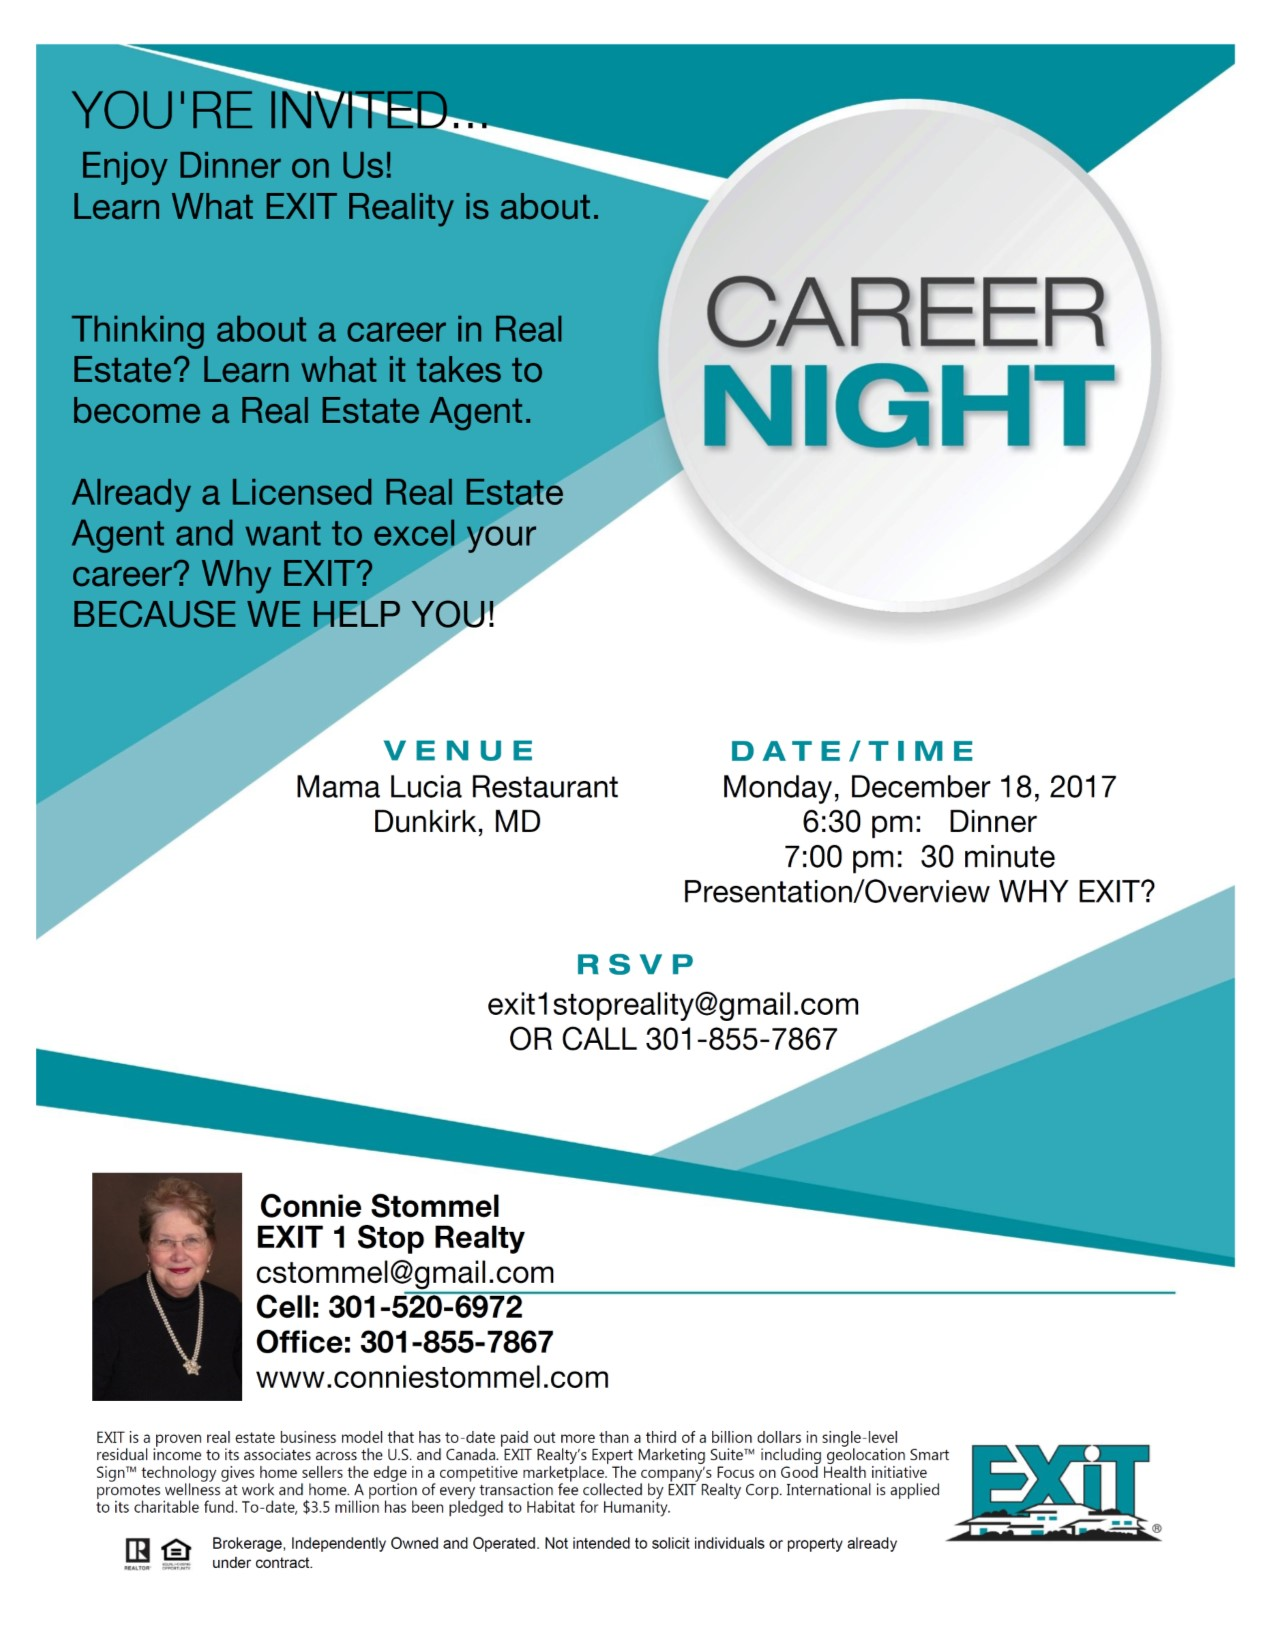 Career Night! Monday, December 18, 2017.. 6:30 pm